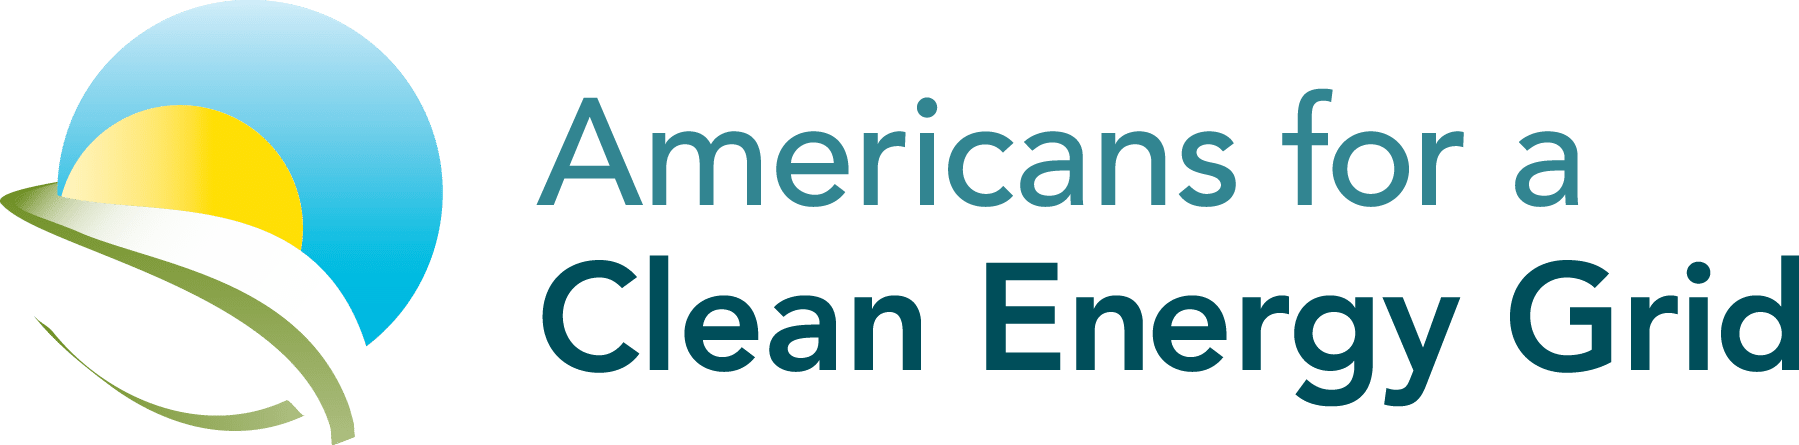 Americans for a Clean Energy Grid Logo